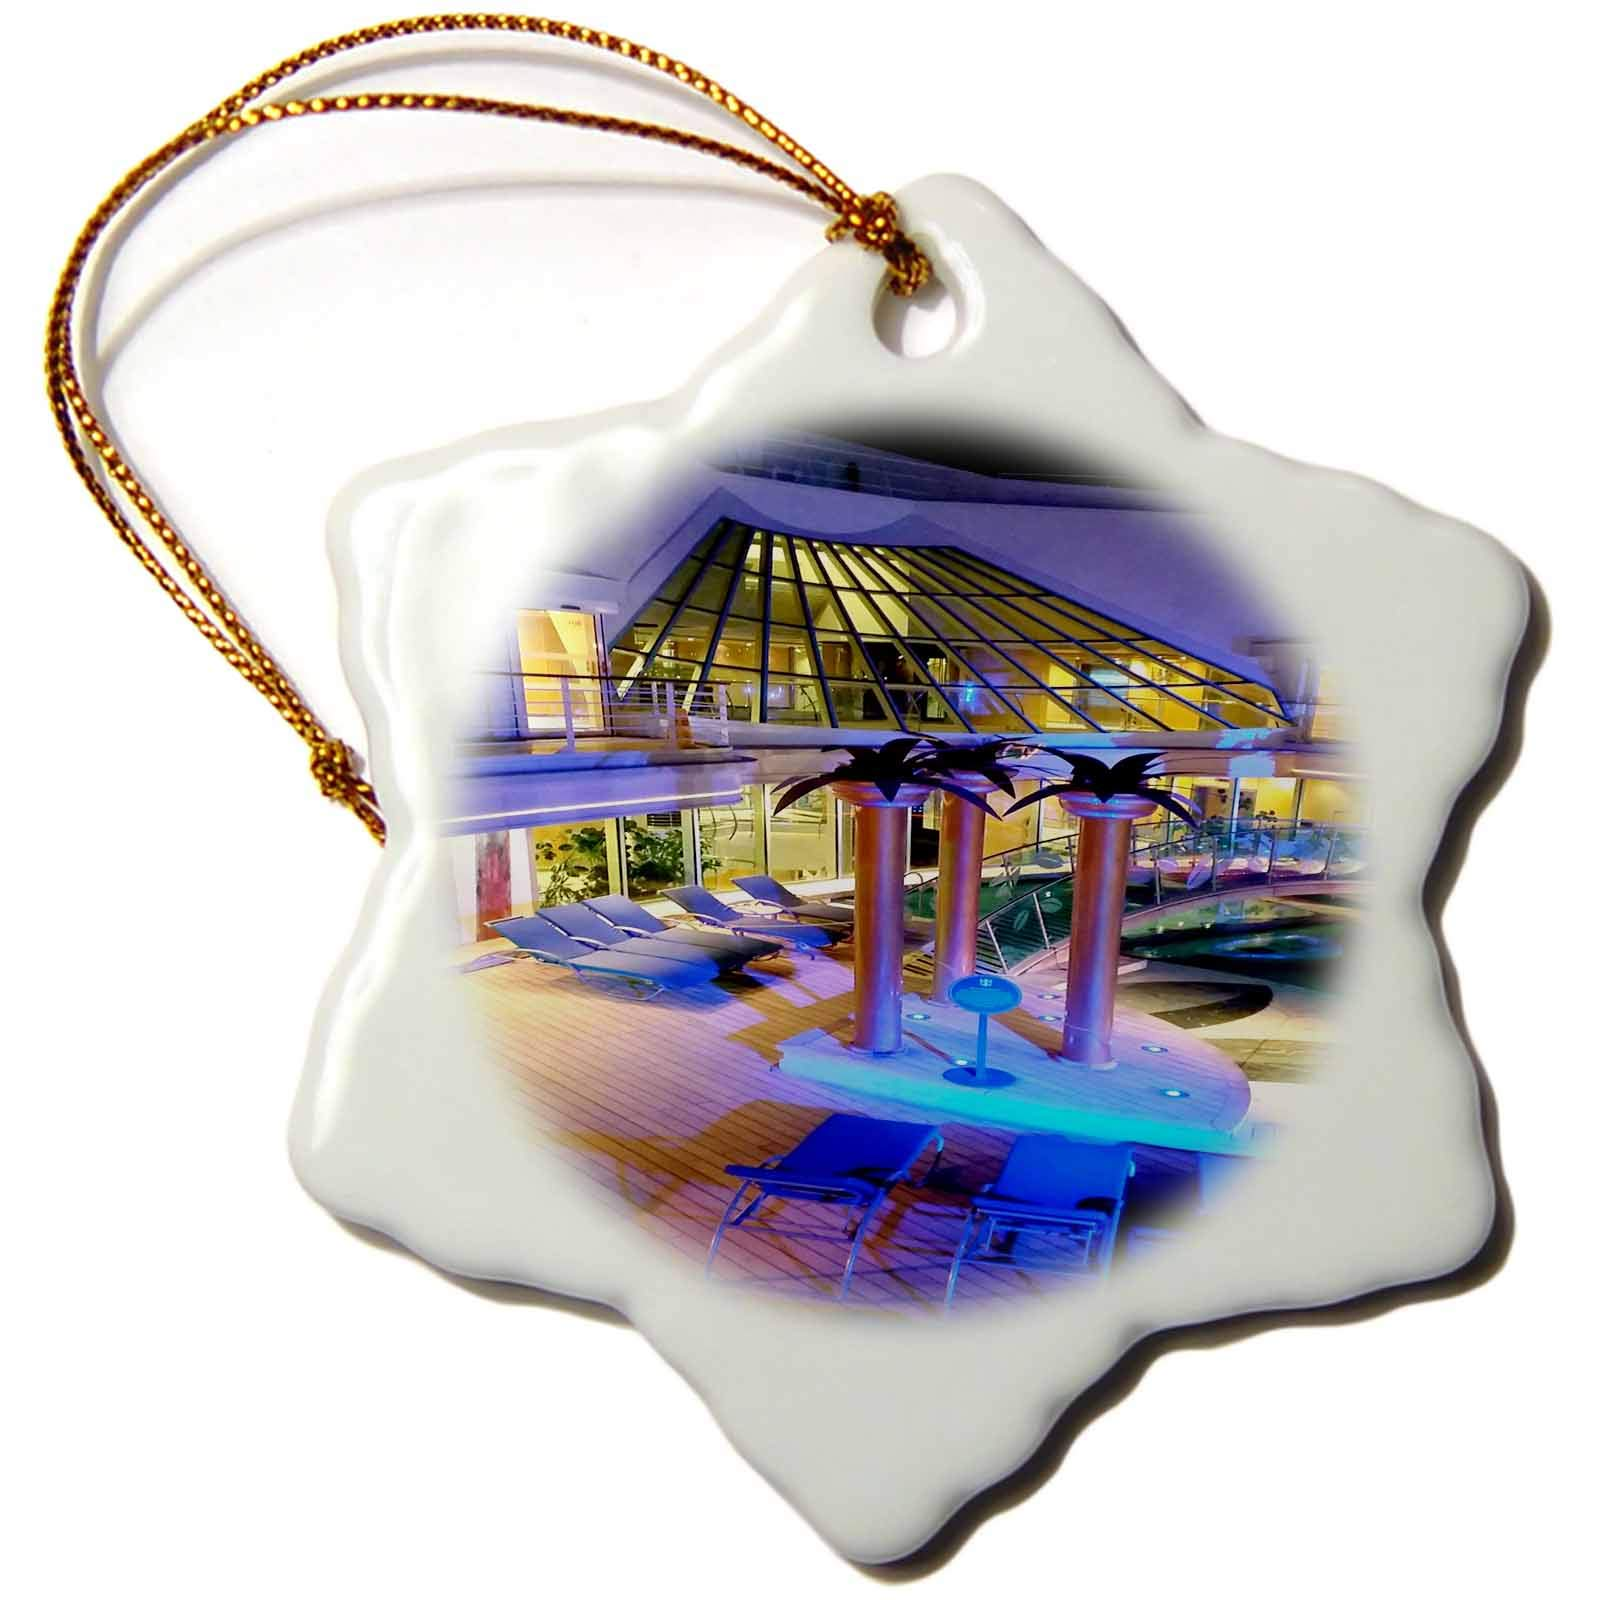 3dRose Lens Art by Florene - Cruise Ship Sites - Image of Adult Pool Area with Spa - 3 inch Snowflake Porcelain Ornament (ORN_291436_1)